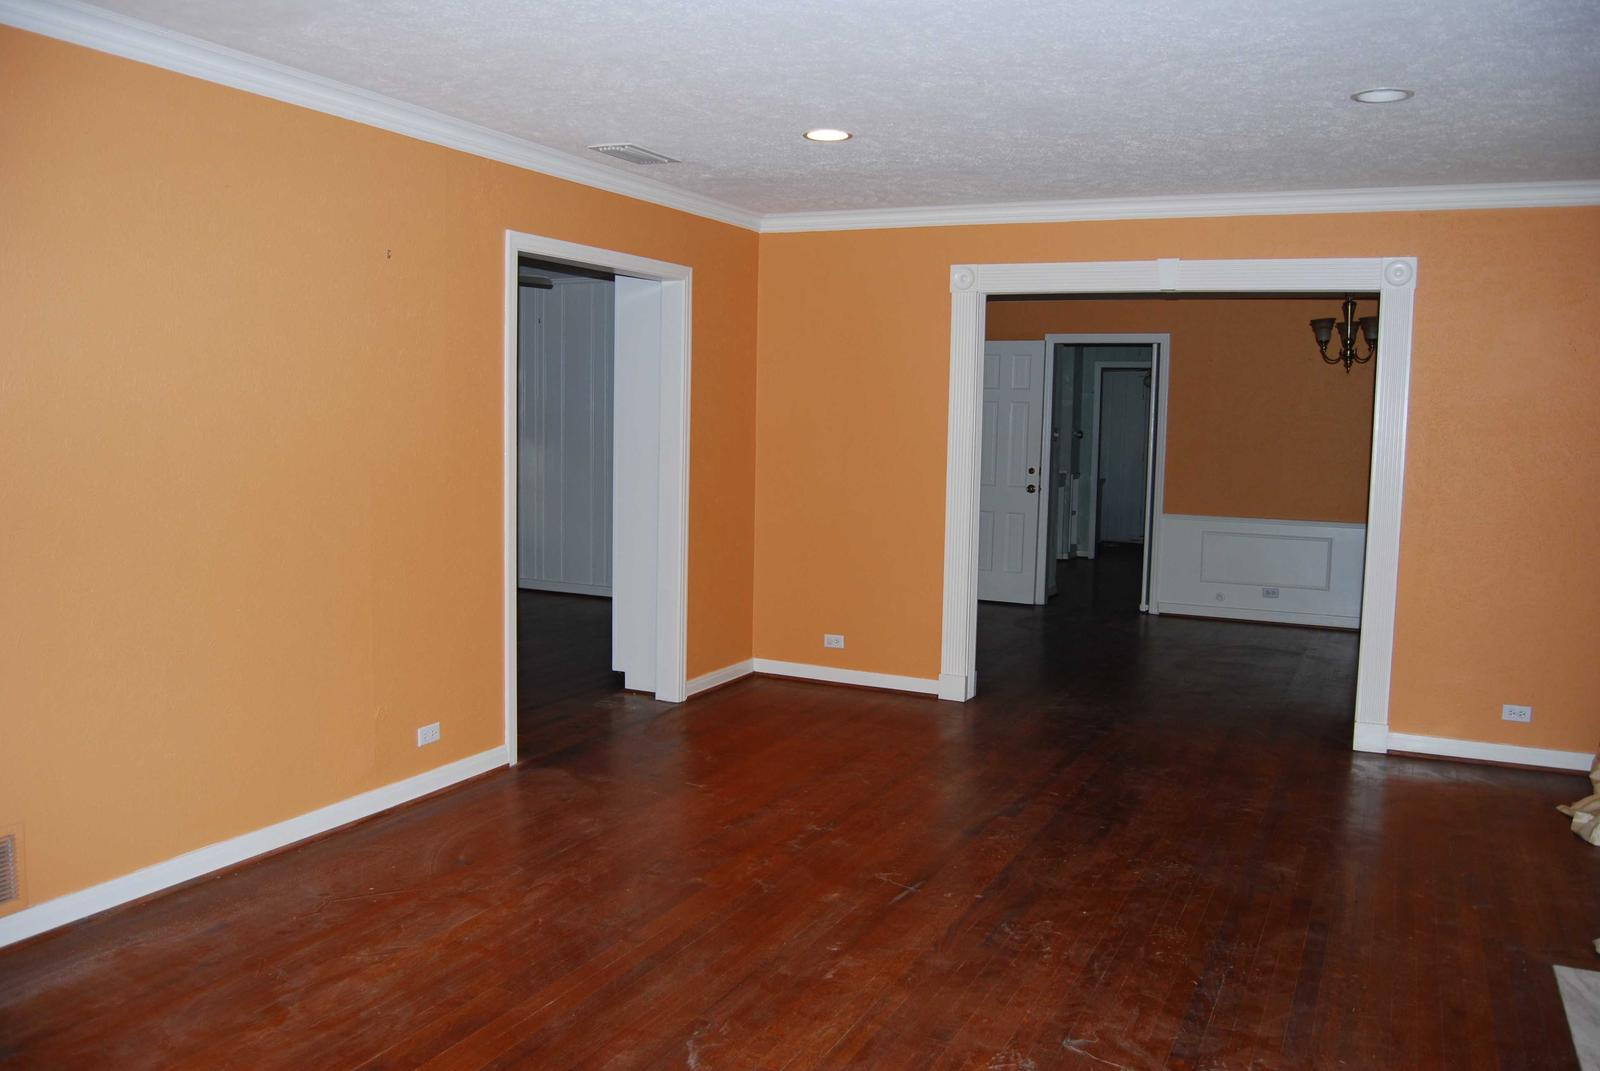 Look at pics and help suggest wall color hardwood Home interior color ideas